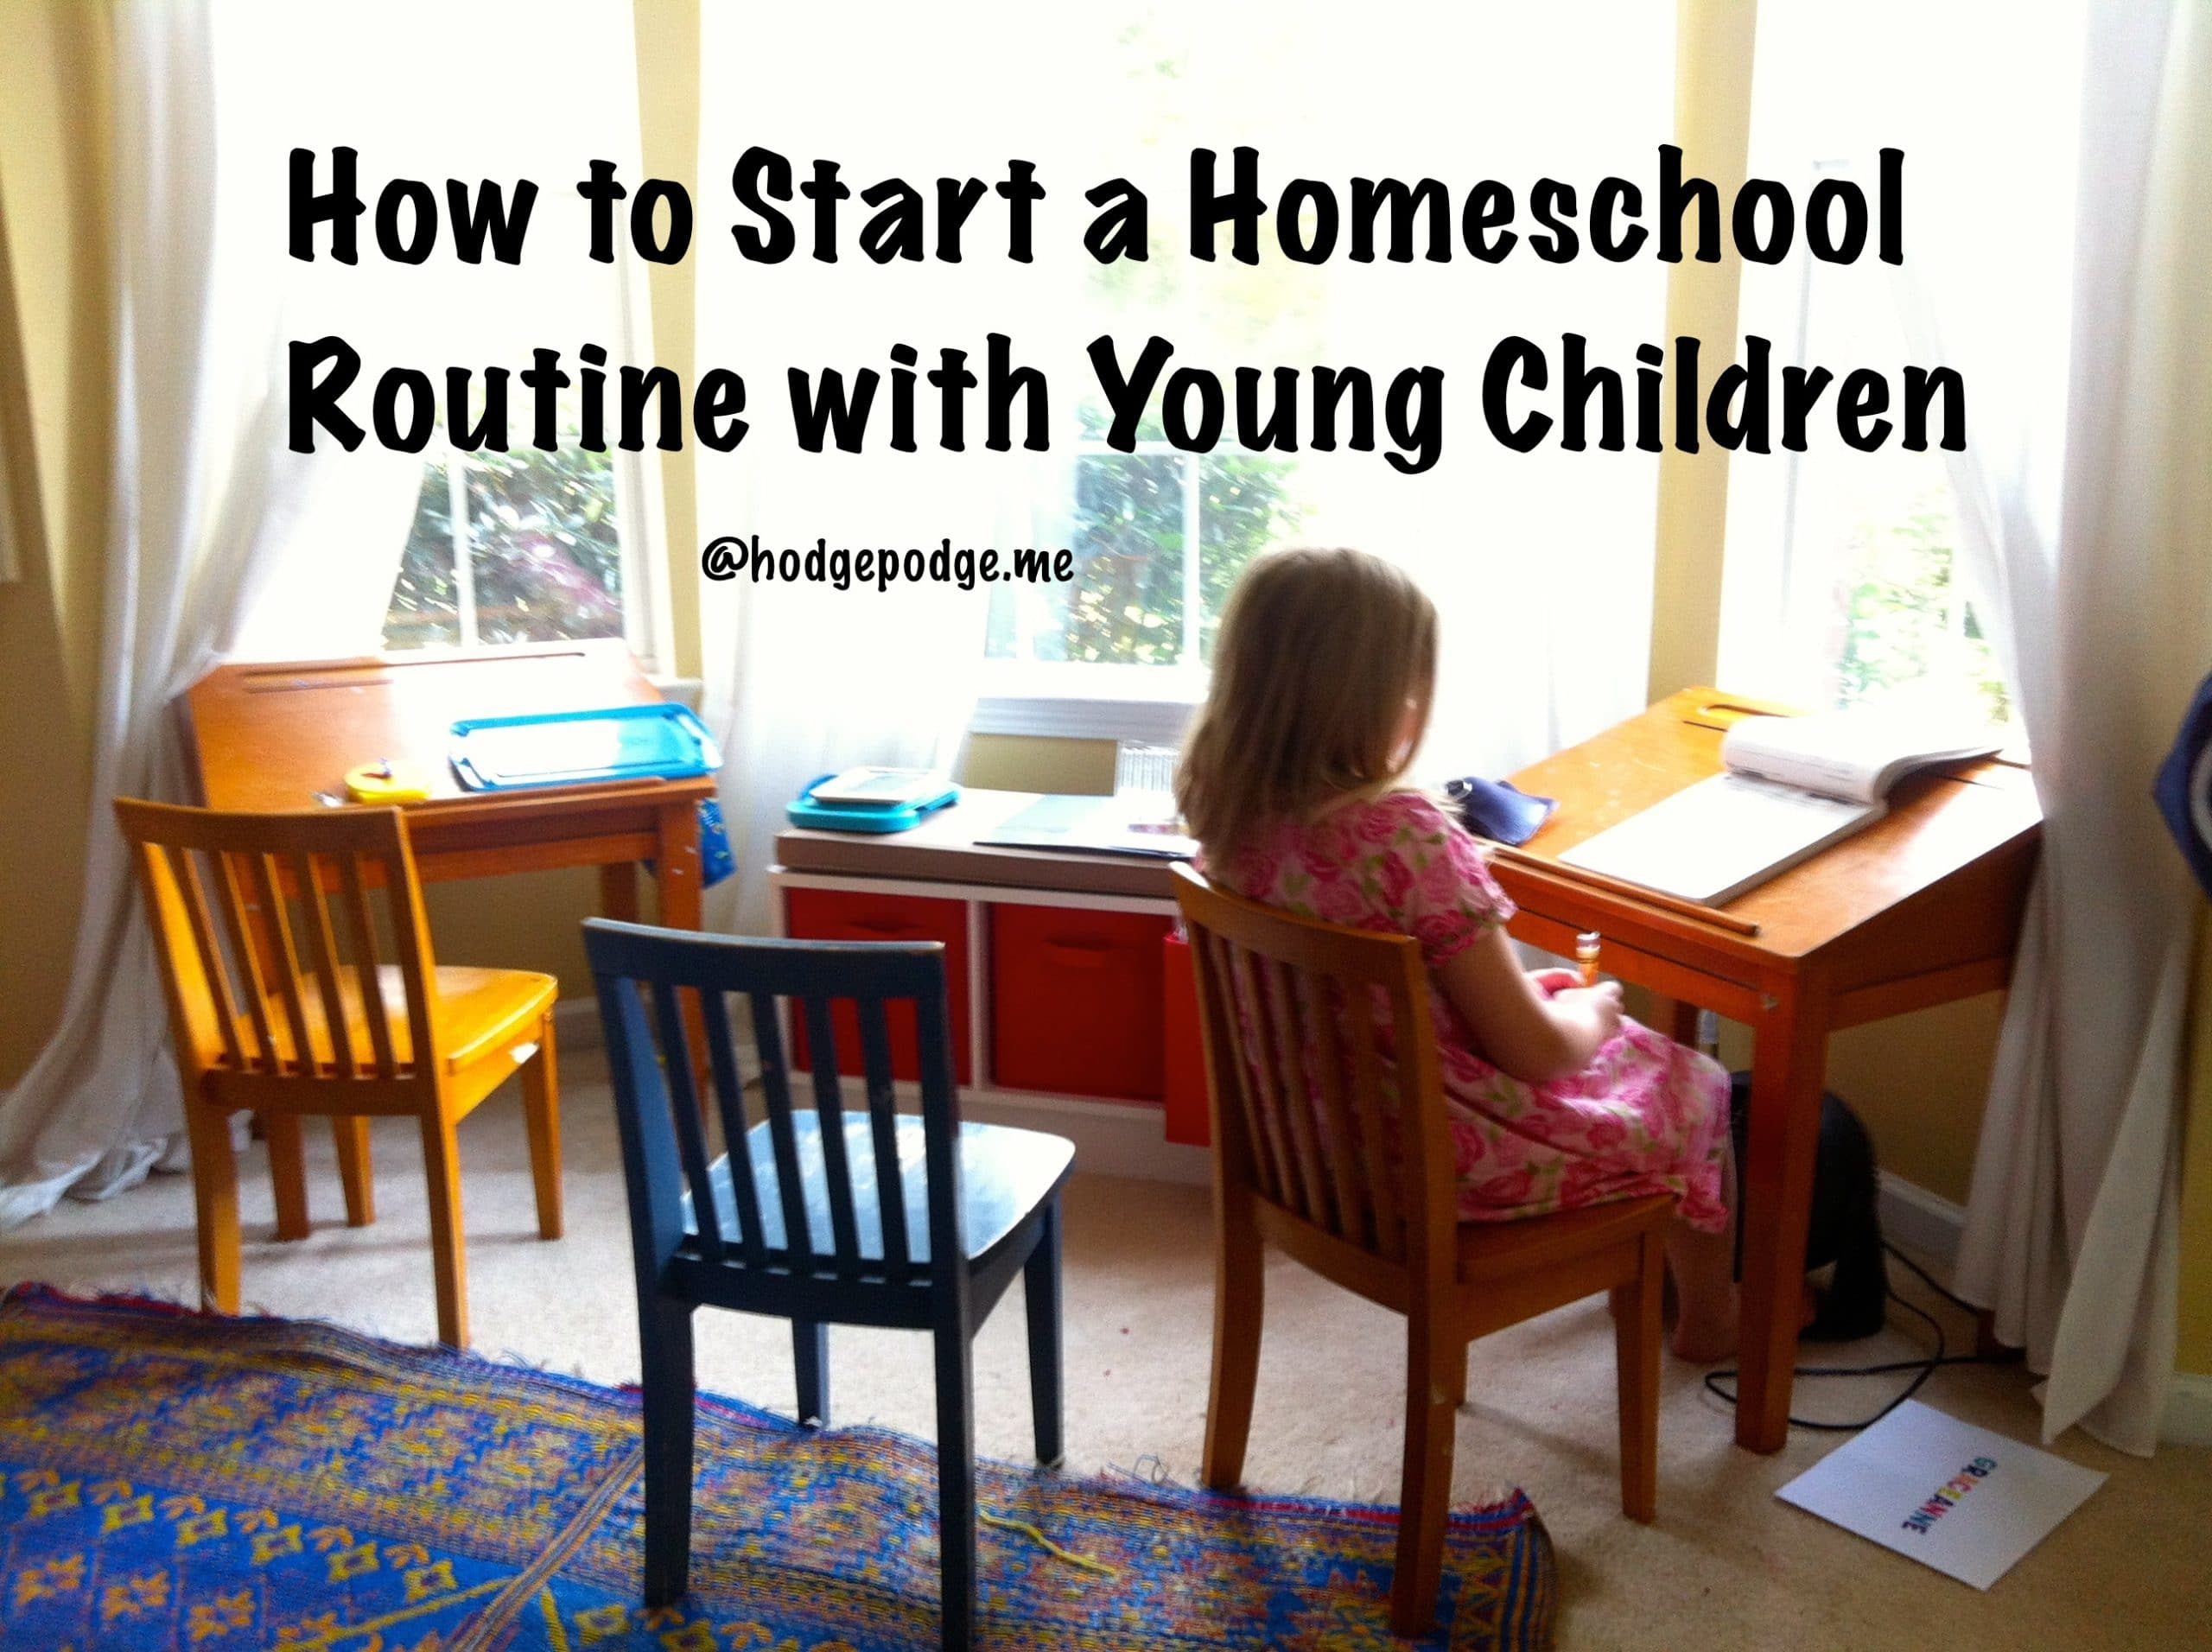 How To Start A Homeschool Routine